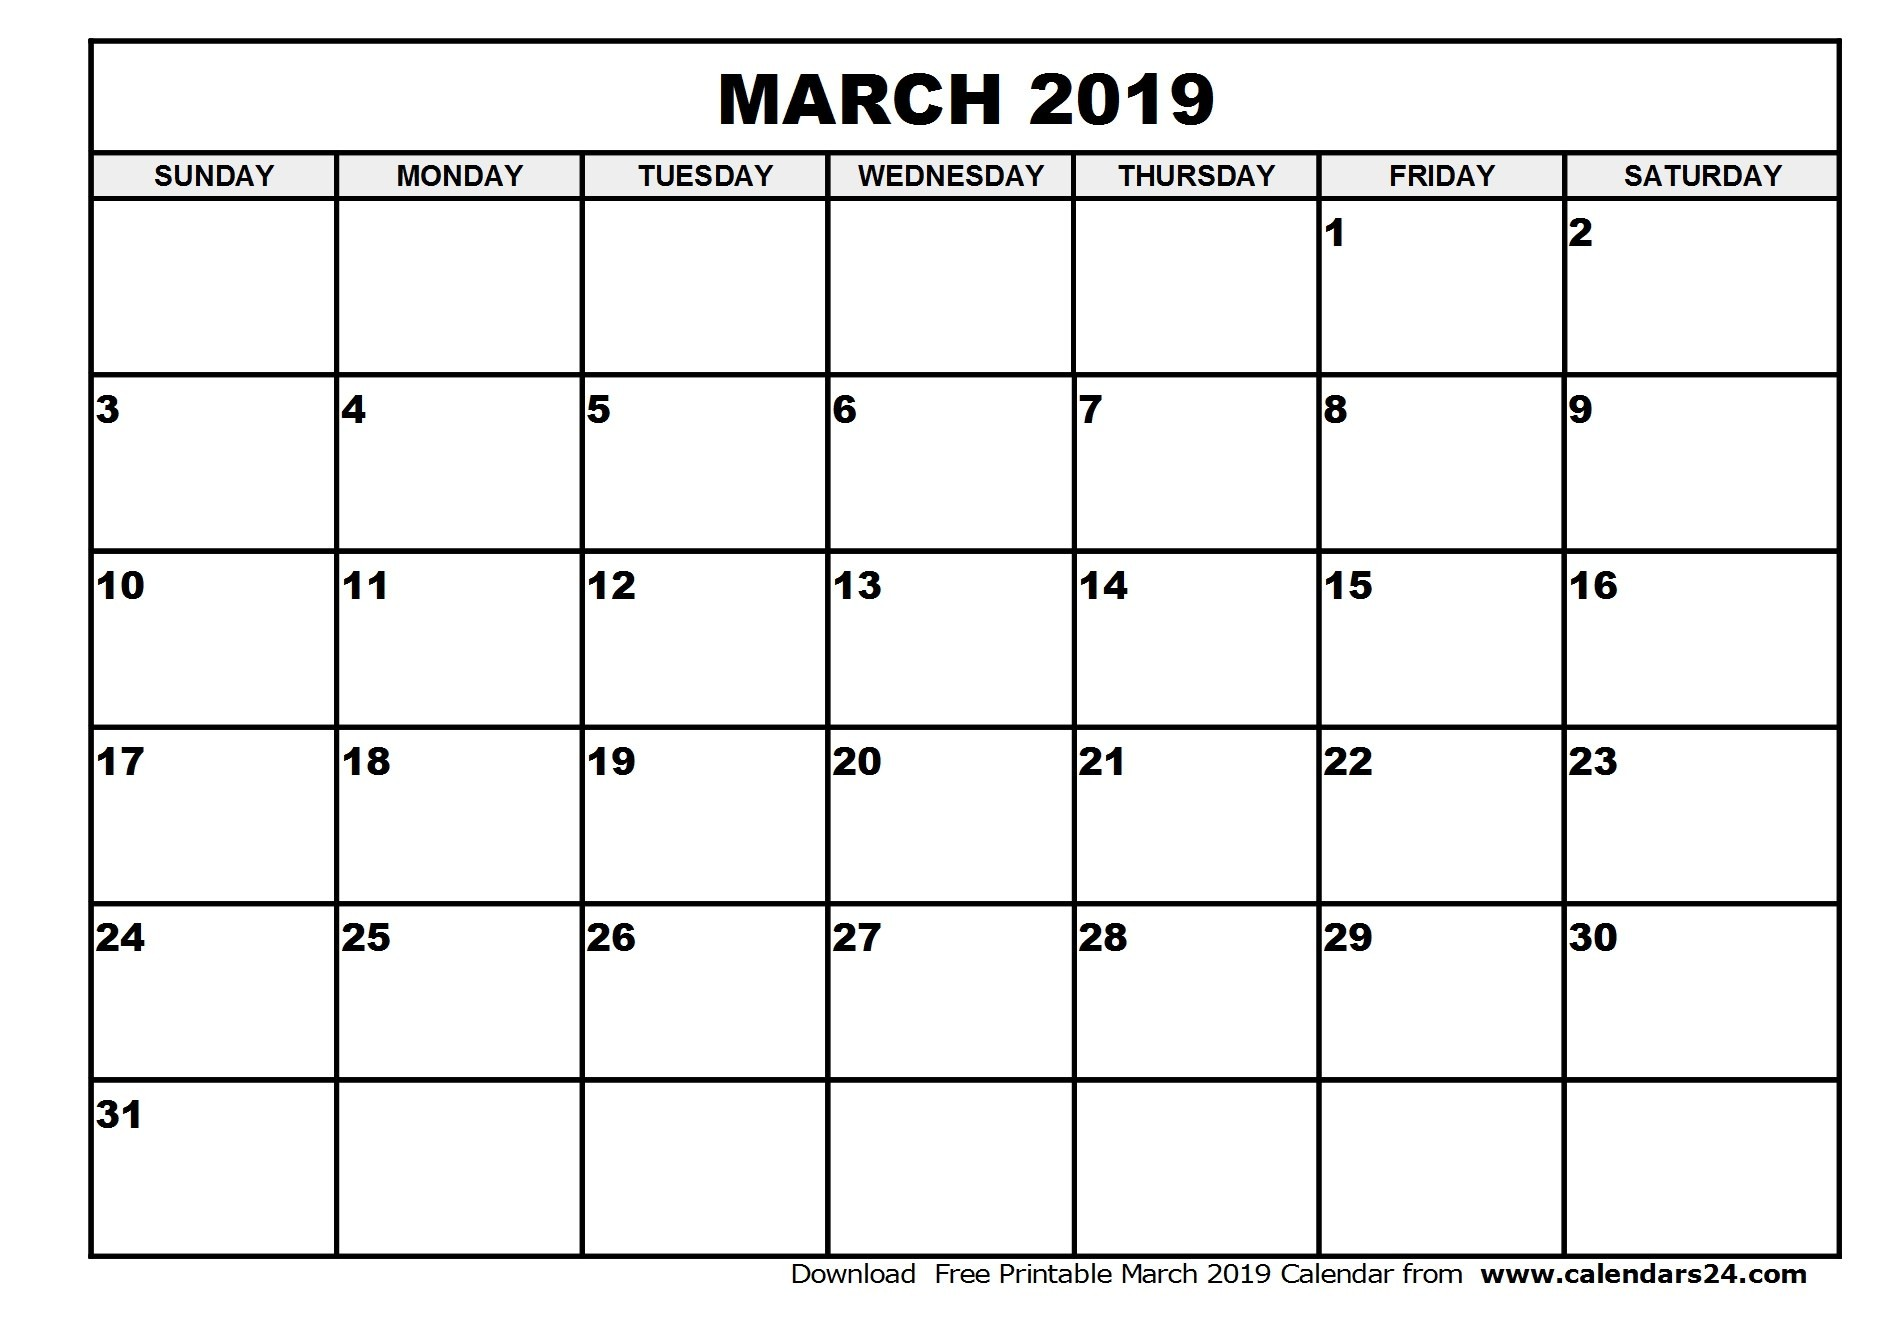 Empty Calendar March 2019 Mejores Y Más Novedosos Calendar March 2019 Of Empty Calendar March 2019 Más Recientemente Liberado 10 Stylish Free Printable Calendars for 2019